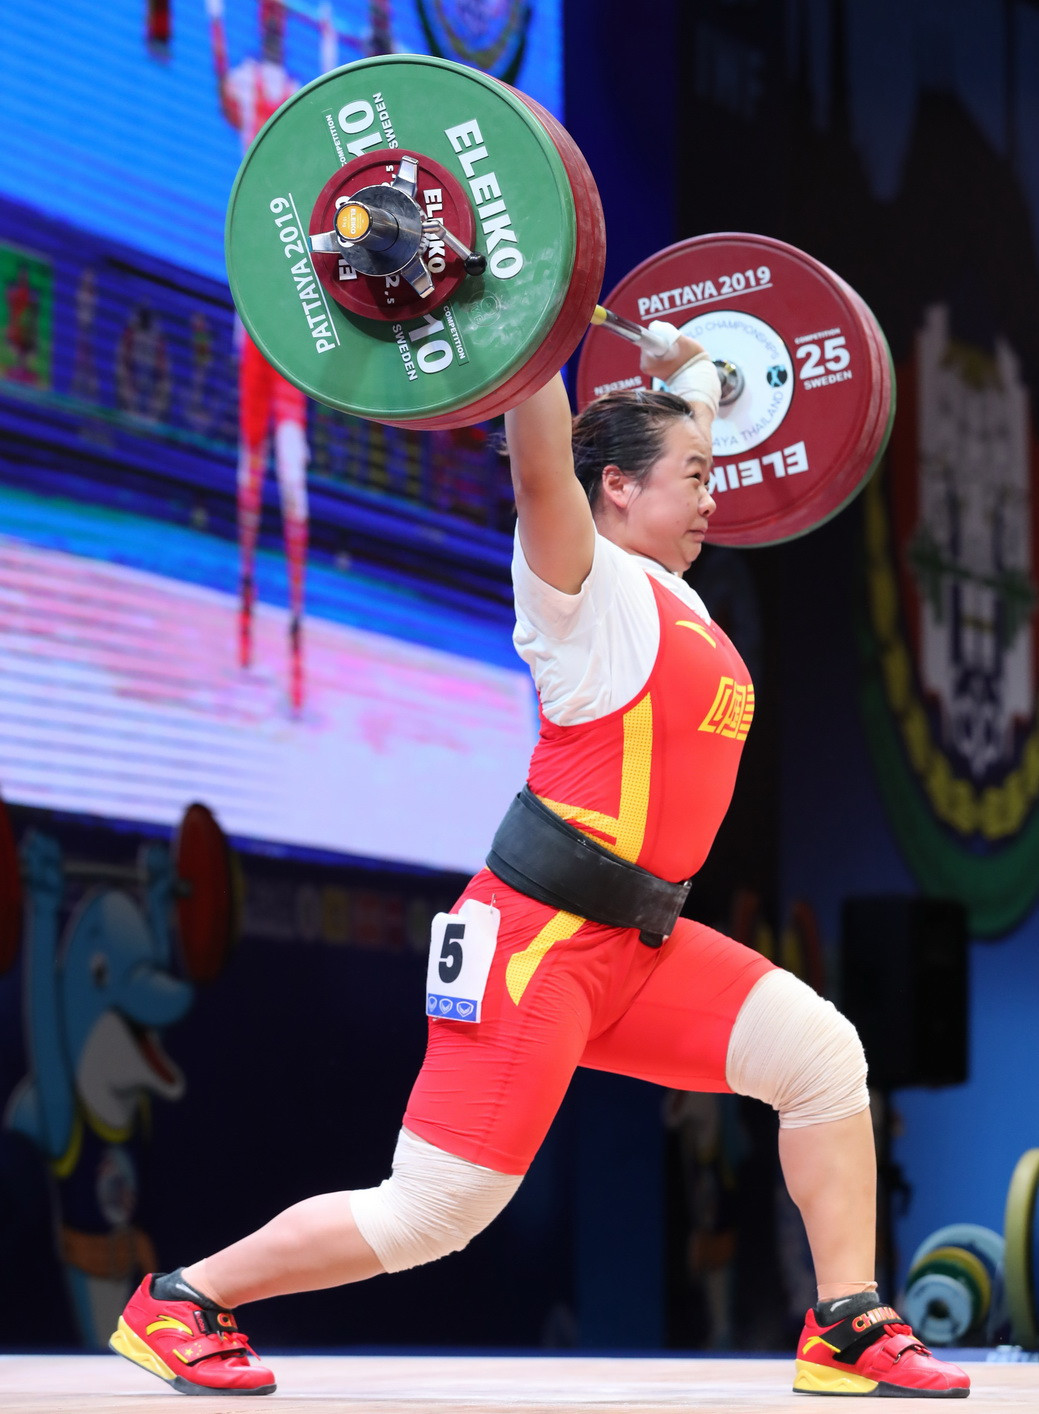 China's Zhang Wangli came second in the snatch and total, but won the clean and jerk gold medal ©IWF